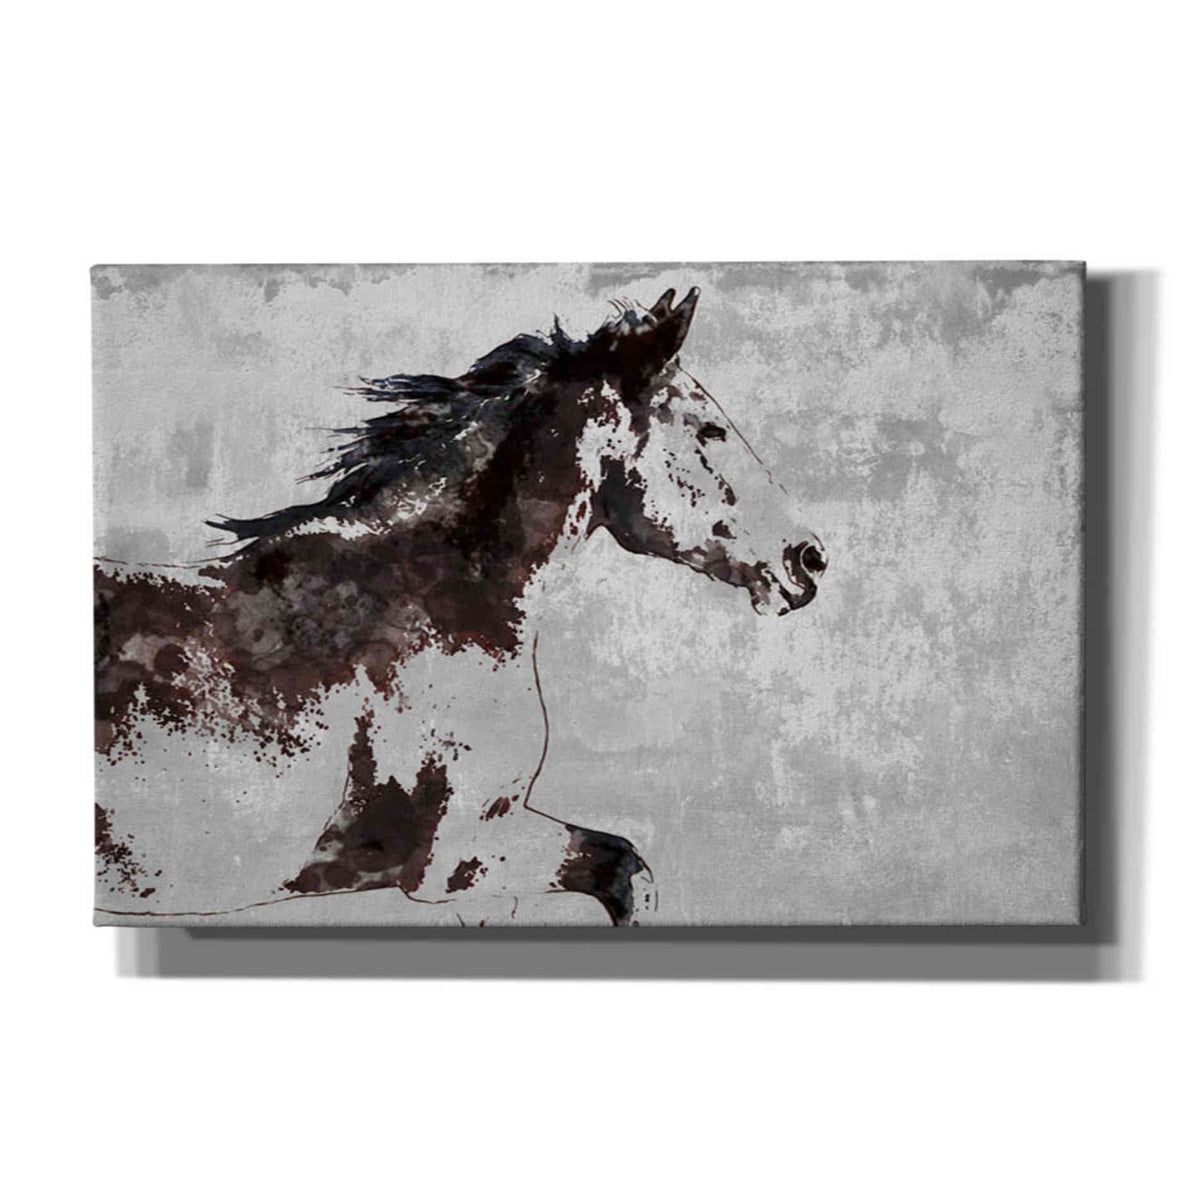 Epic Graffiti 'Horse Race' by Irena Orlov, Giclee Canvas Wall Art